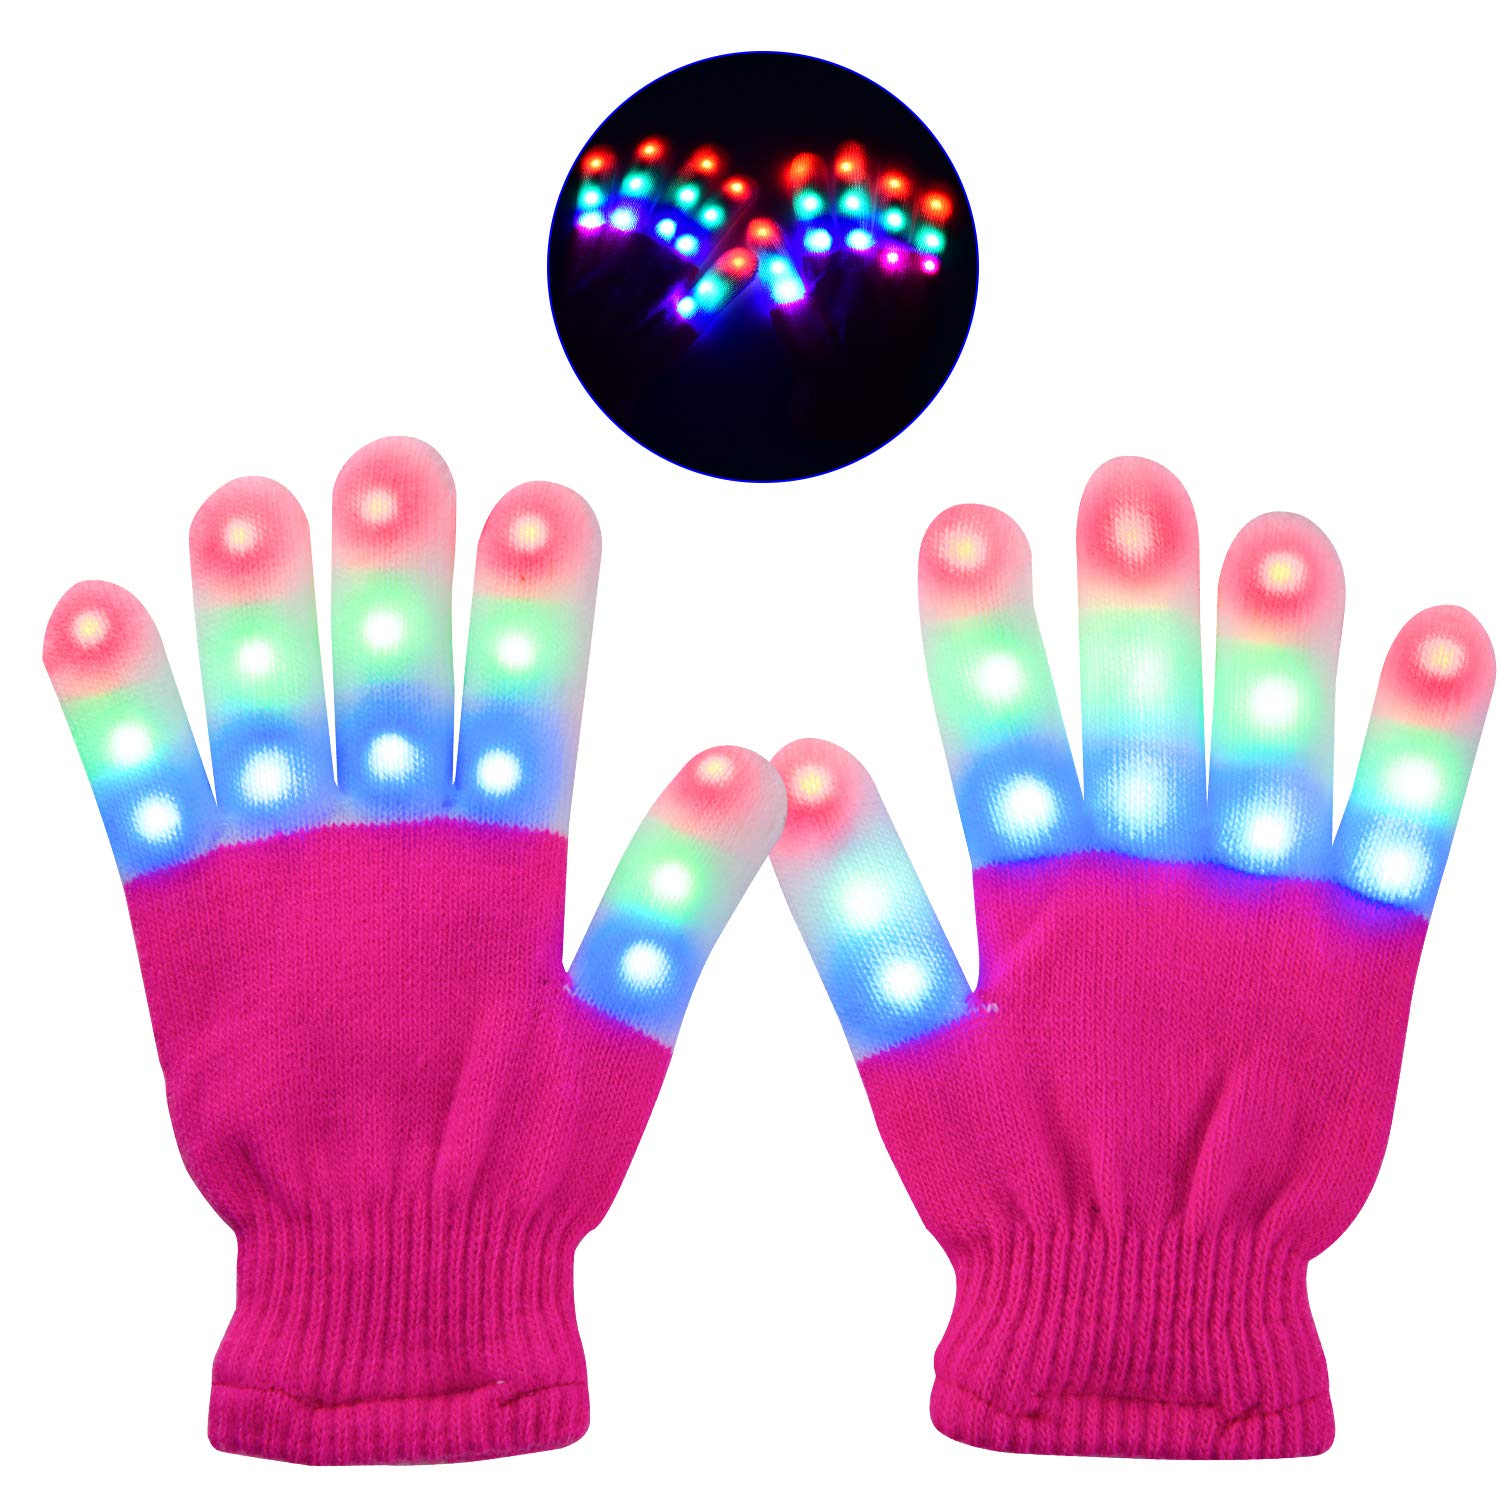 My Granddaughter LOVES These LED Flashing Gloves!